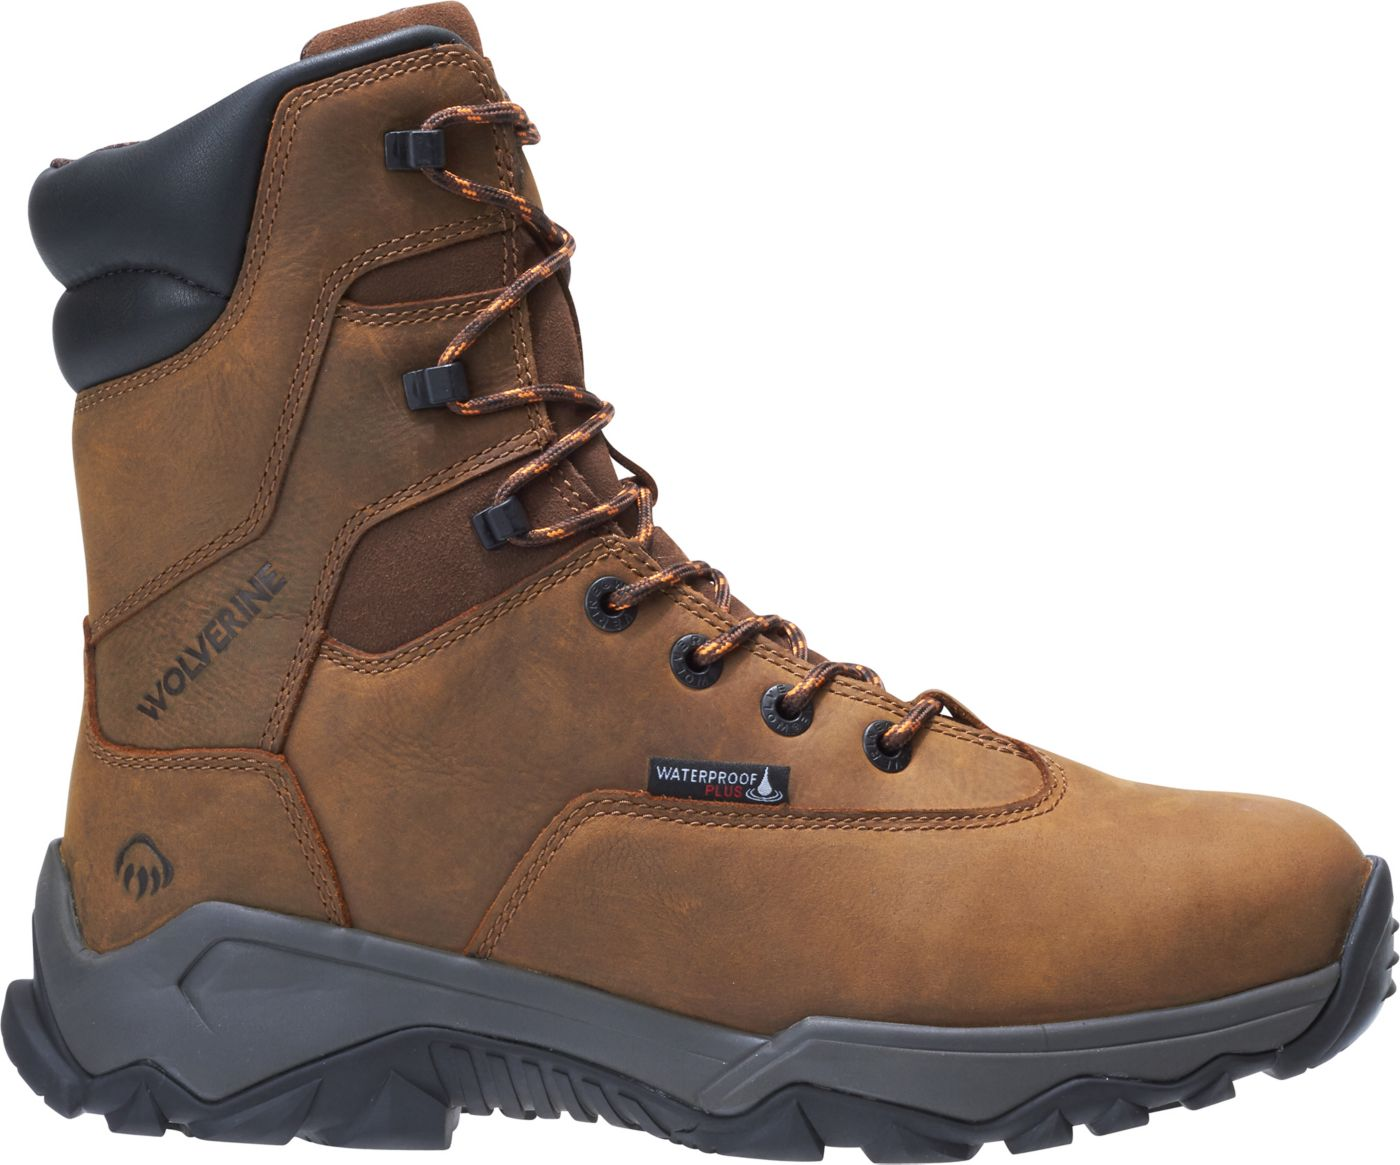 Wolverine Men's Glacier II 8'' 600g Waterproof Composite Toe Work Boots